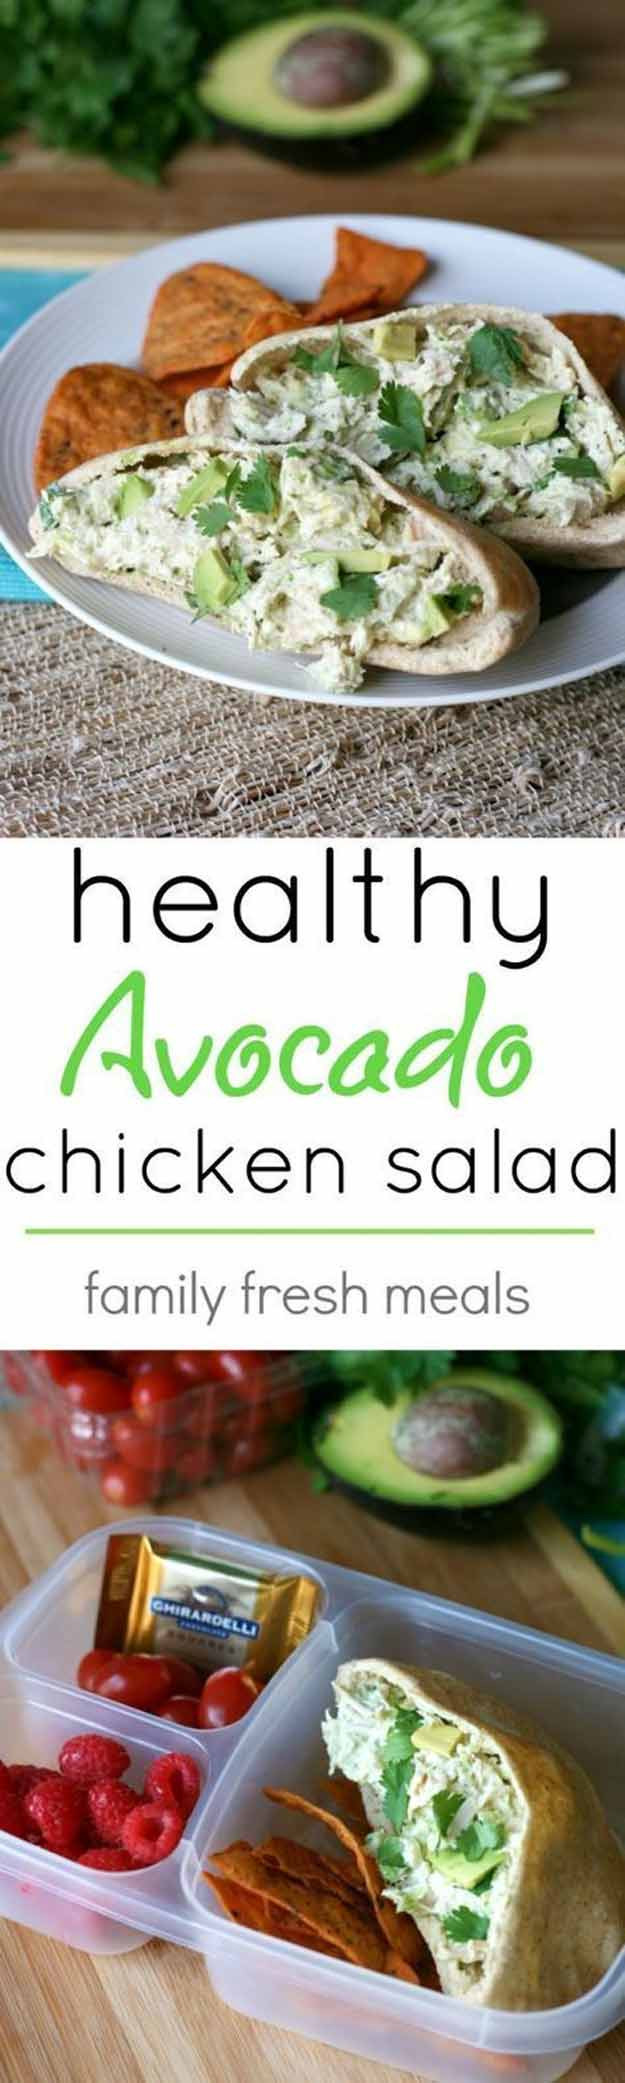 Healthy Avocado Chicken Salad  35 More Healthy Lunches For Work The Goddess